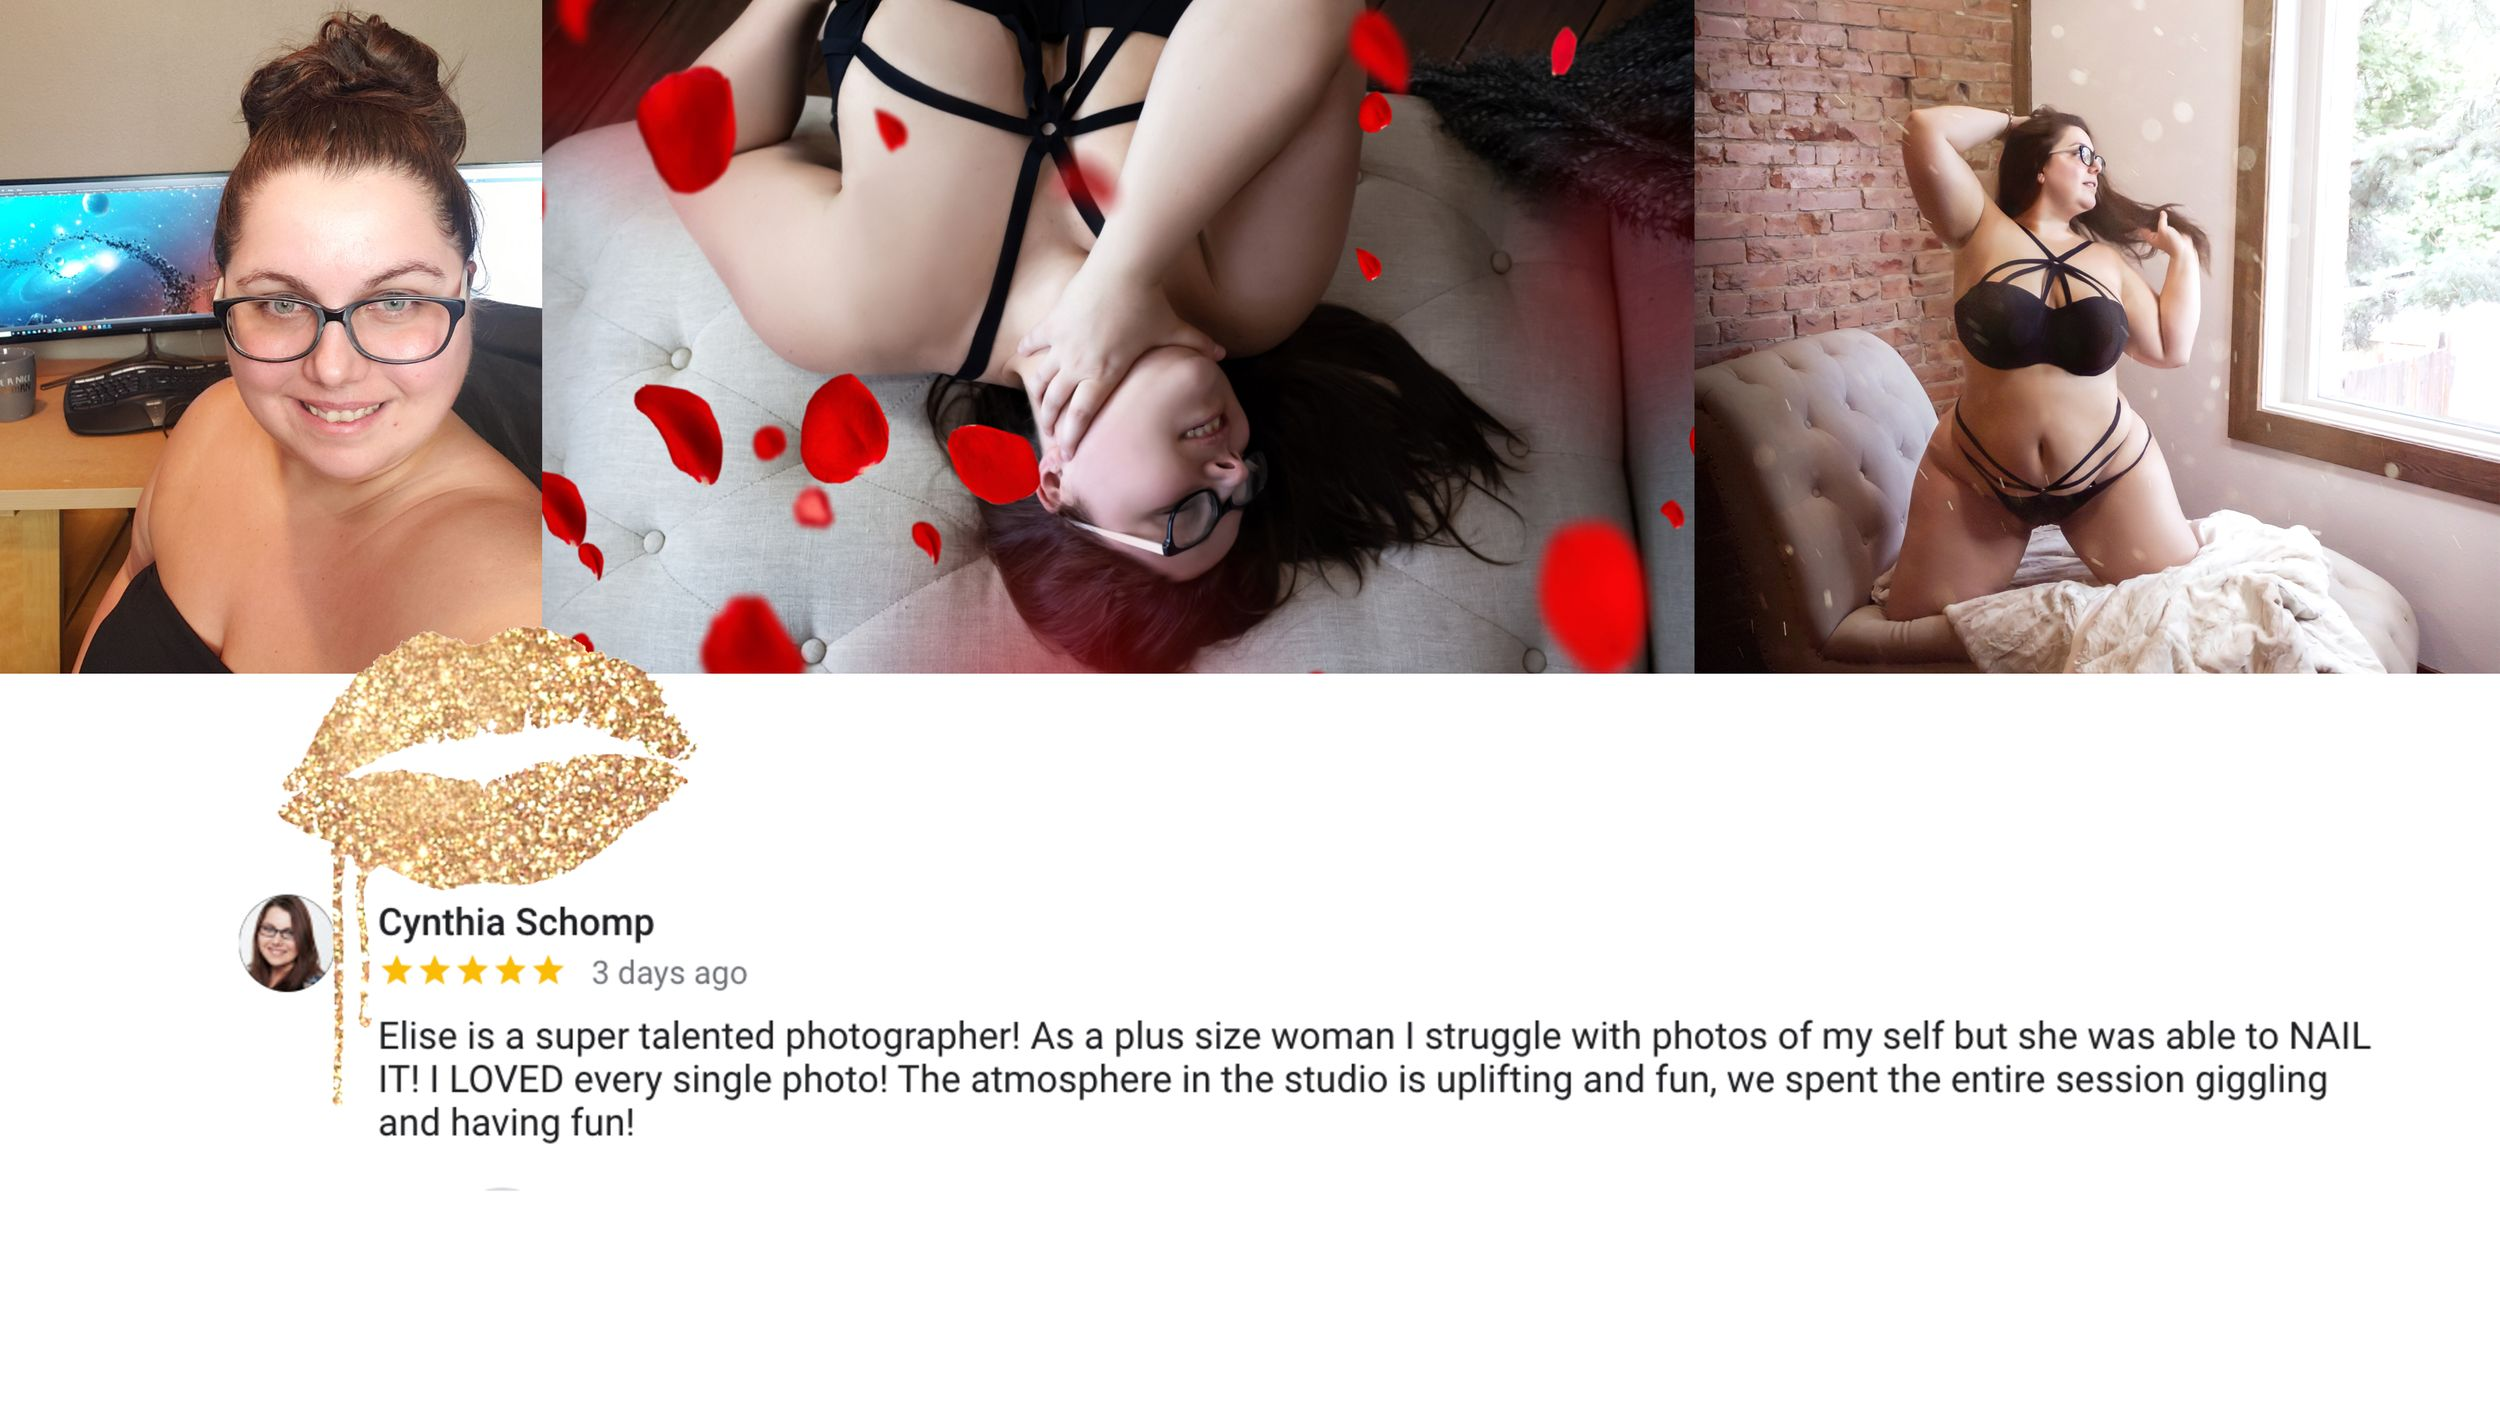 REVIEW OF BOUDOIR BY ELISE FROM A GORGEOUS PLUS SIZE CLIENT